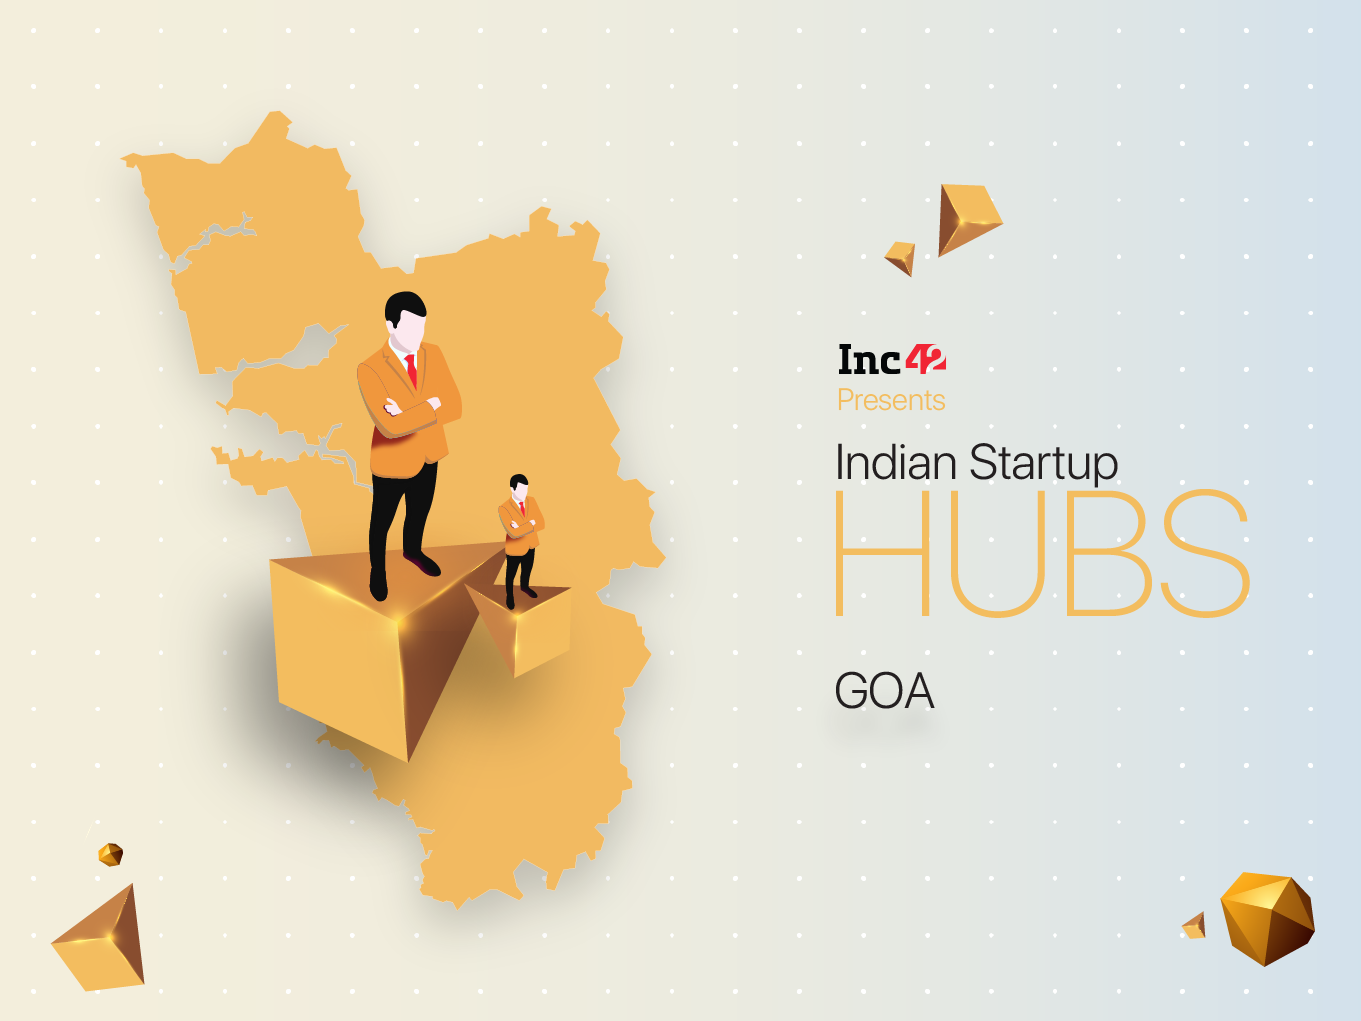 Incubators Take The Lead In Driving Goa's Emerging Startup Ecosystem